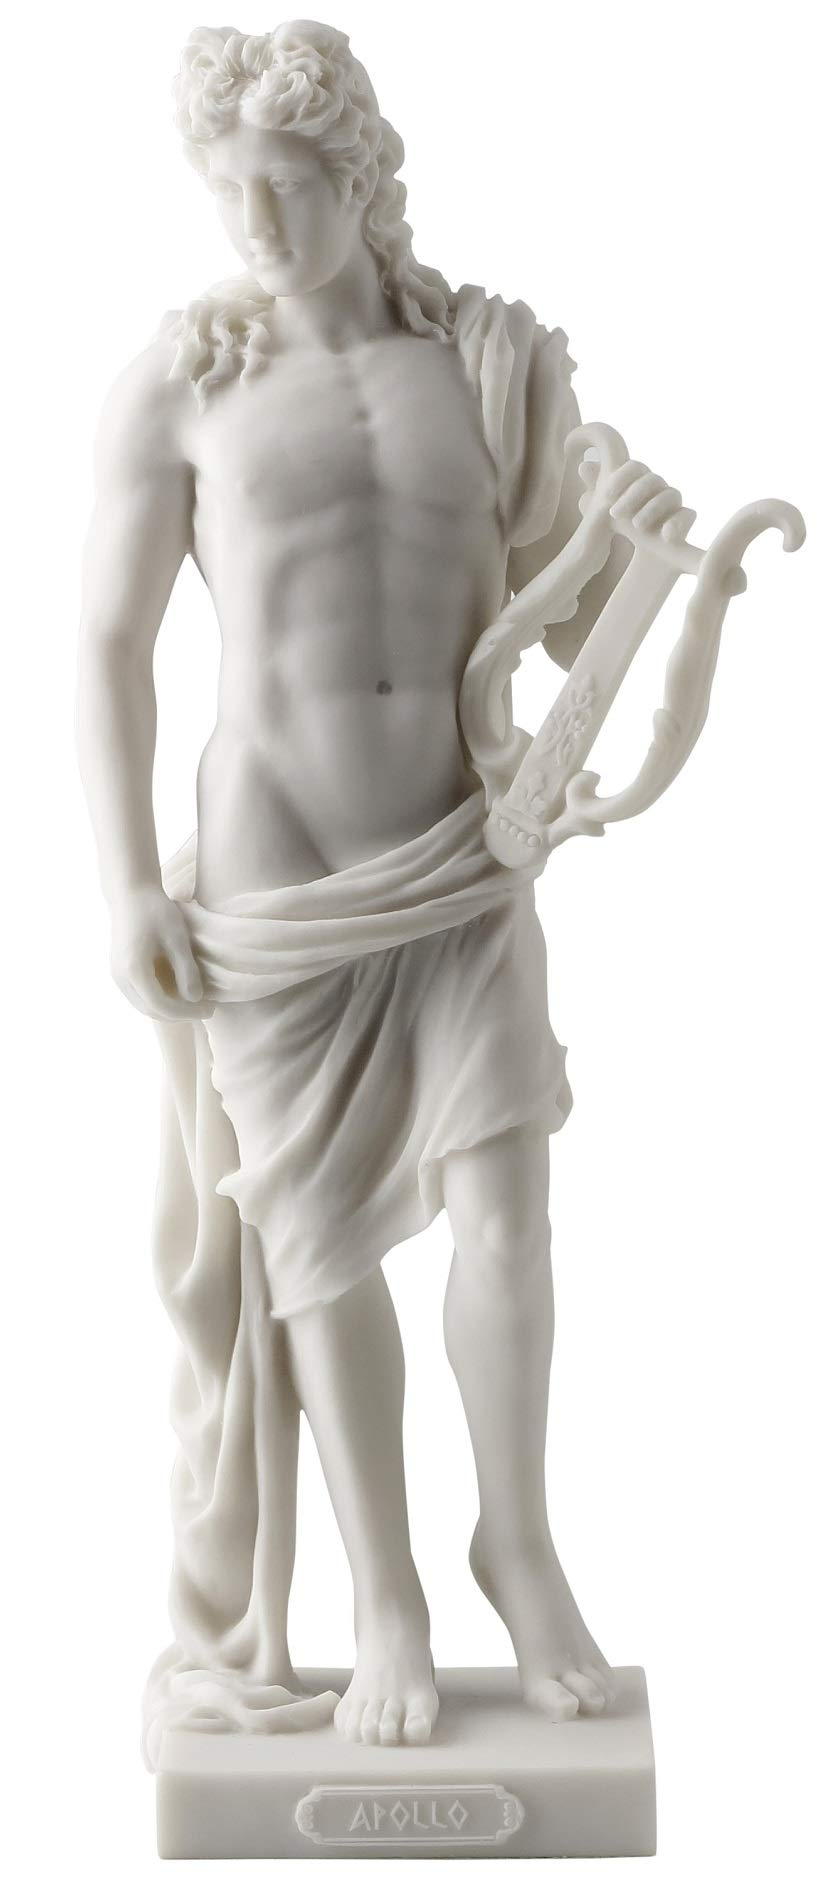 Apollo - Greek God of Light, Music and Poetry Statue White Finish by JFSM INC